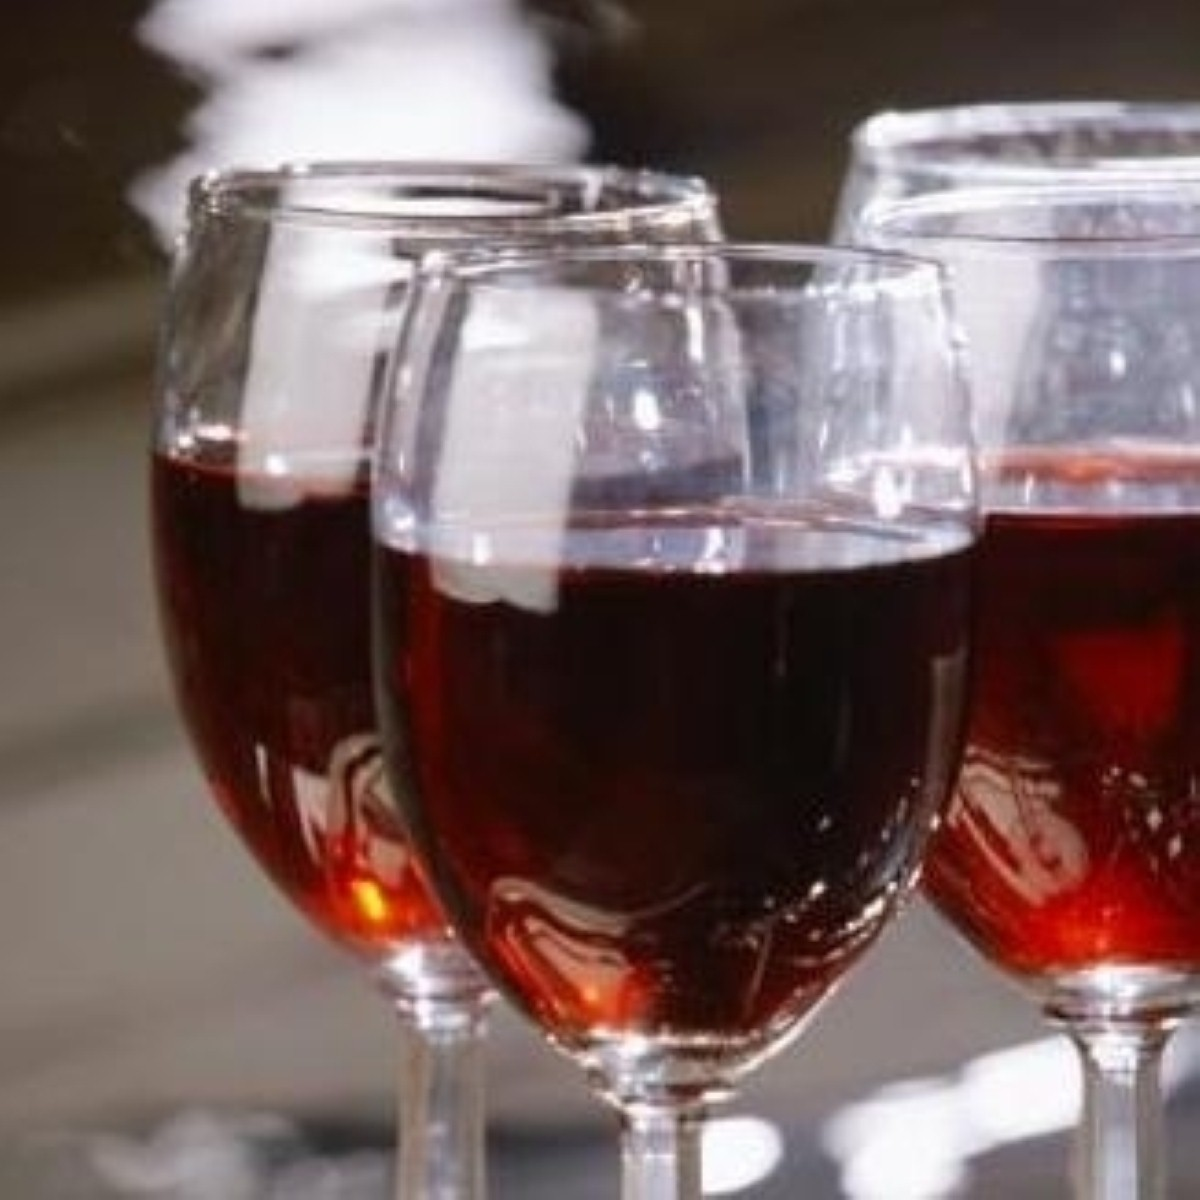 In England nearly a third of all men and a fifth of all women are regularly drinking more than the official guidelines say they should.